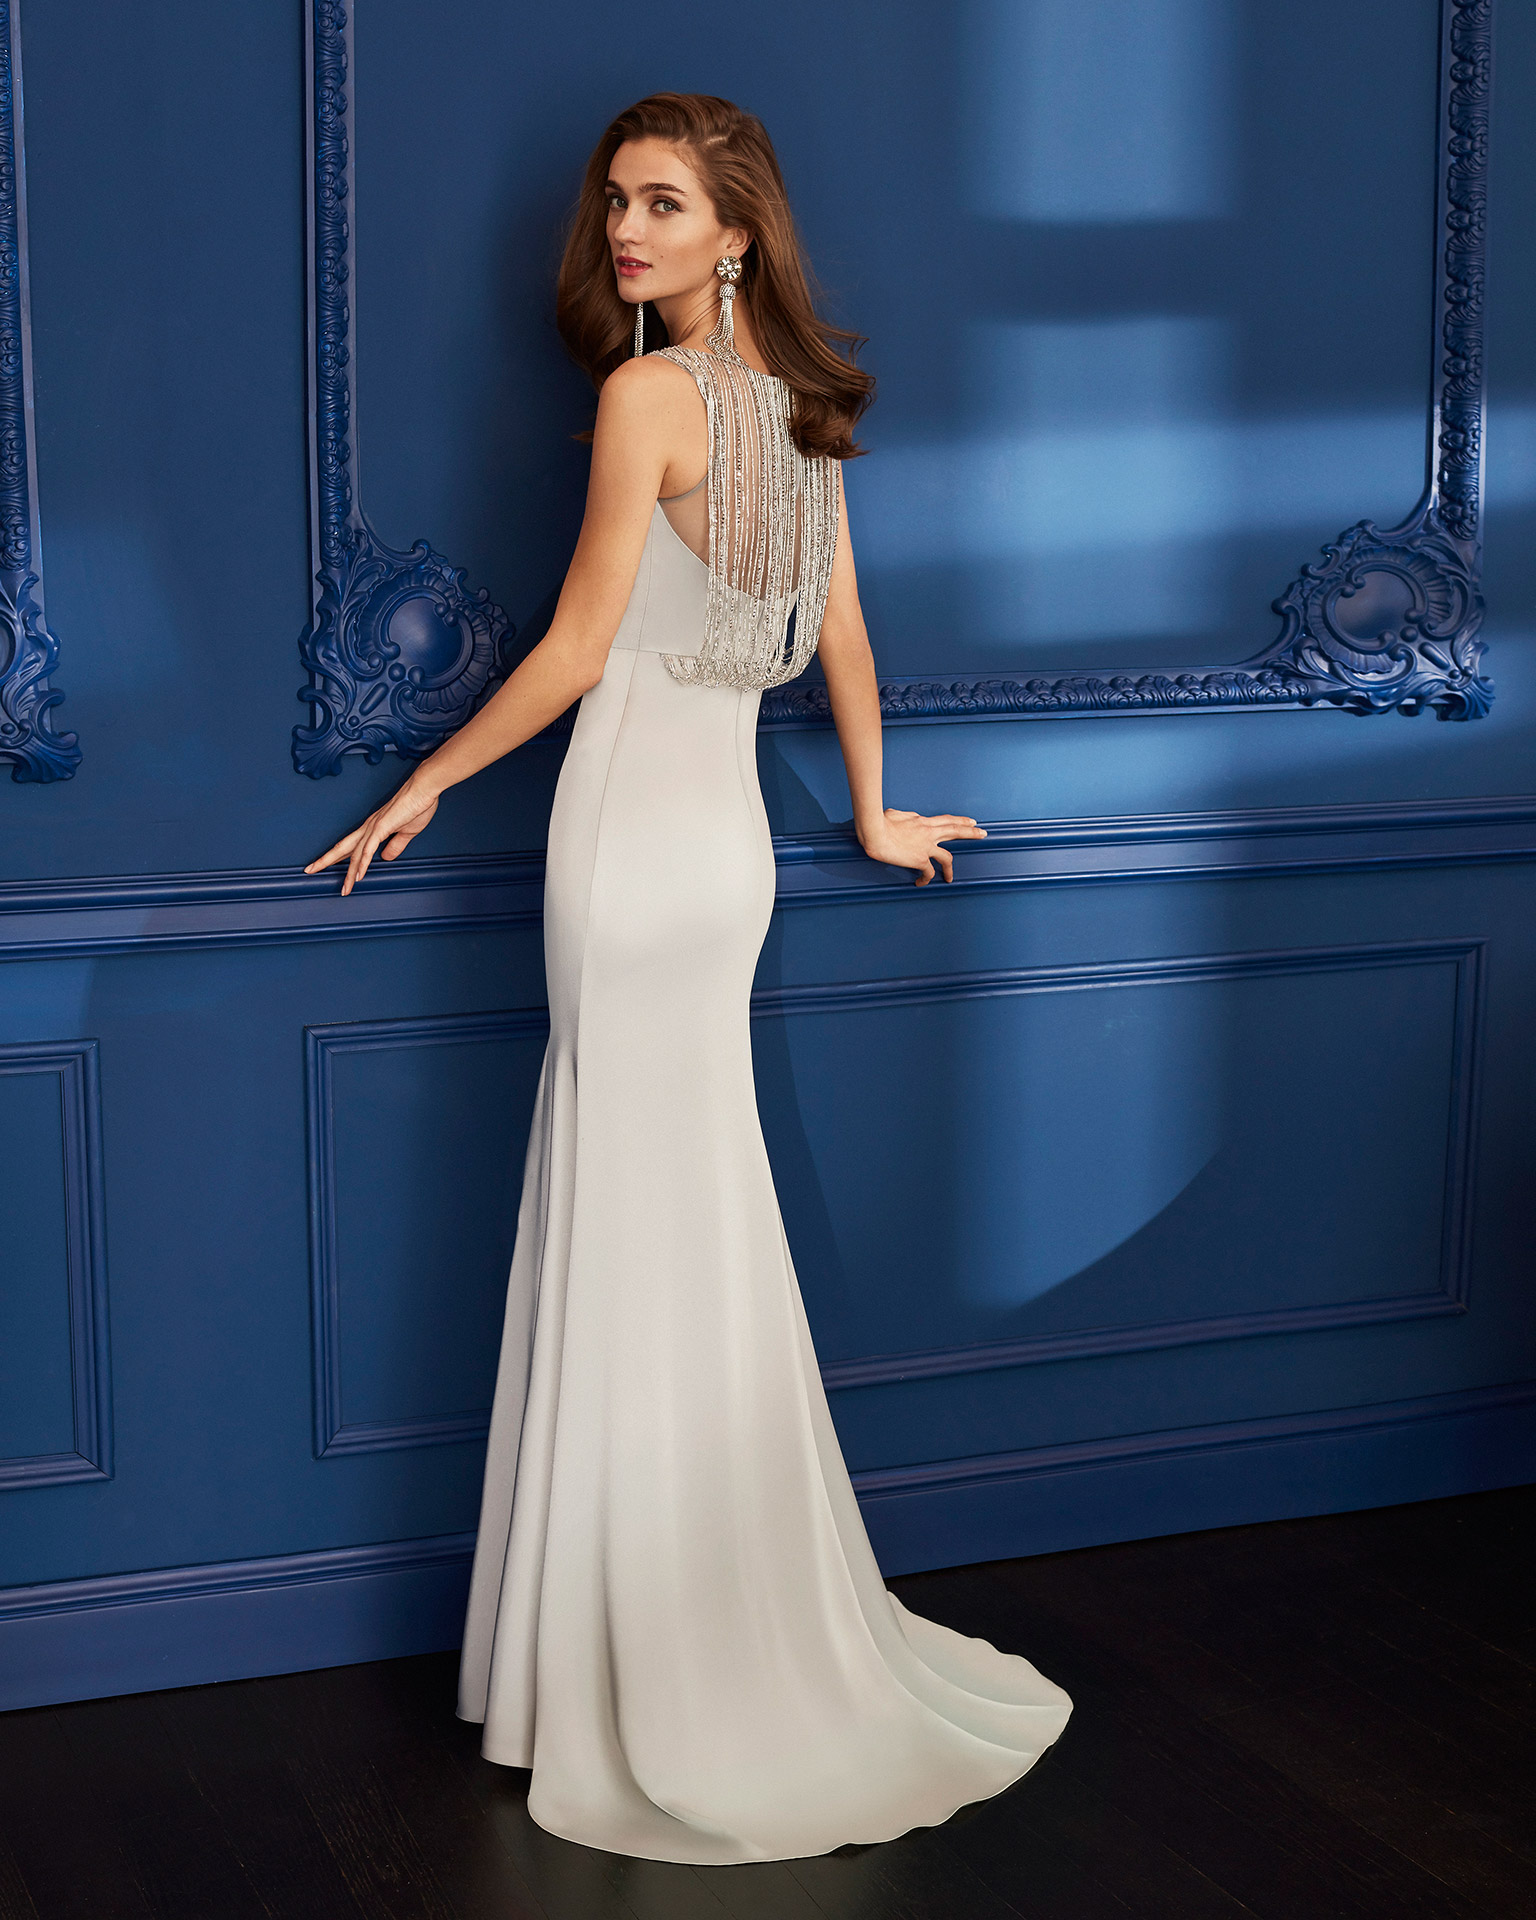 Cocktail dress in crepe with beaded bodice. Bateau neckline. 2020 MARFIL BARCELONA Collection.